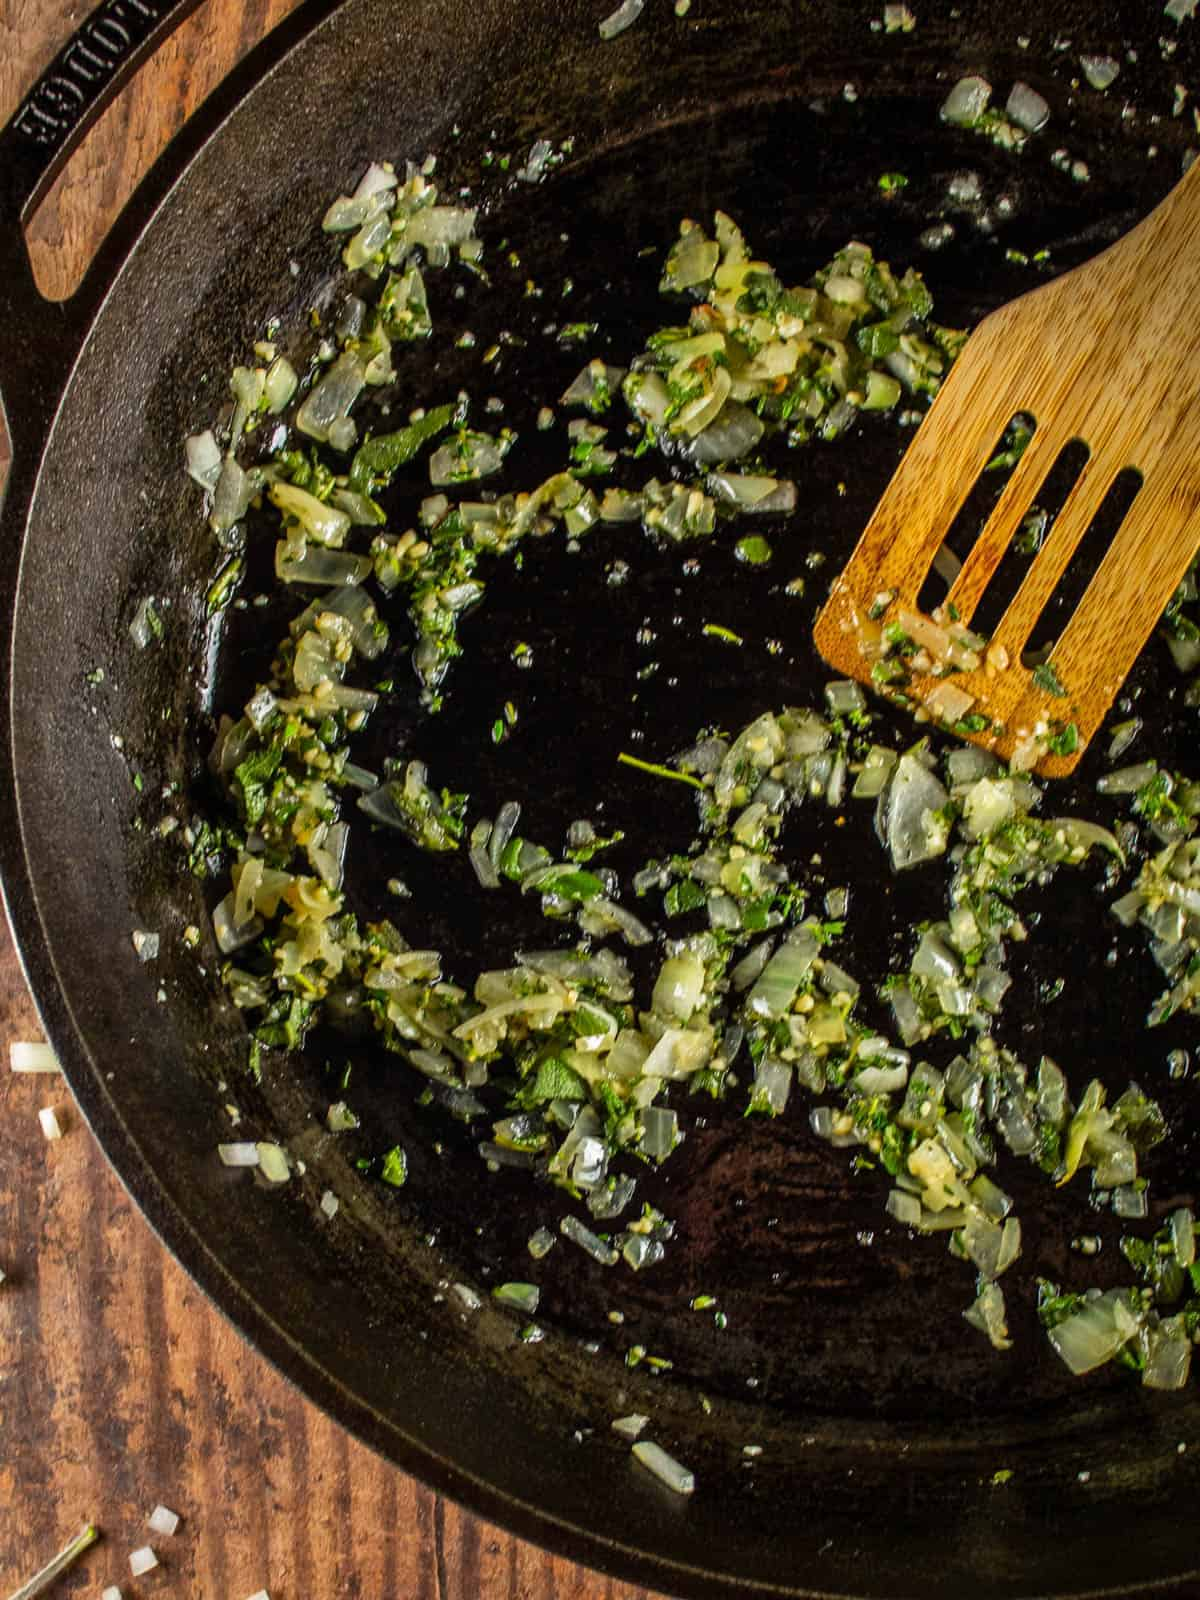 wooden spatula stirring herbs and onions in a cast iron skillet